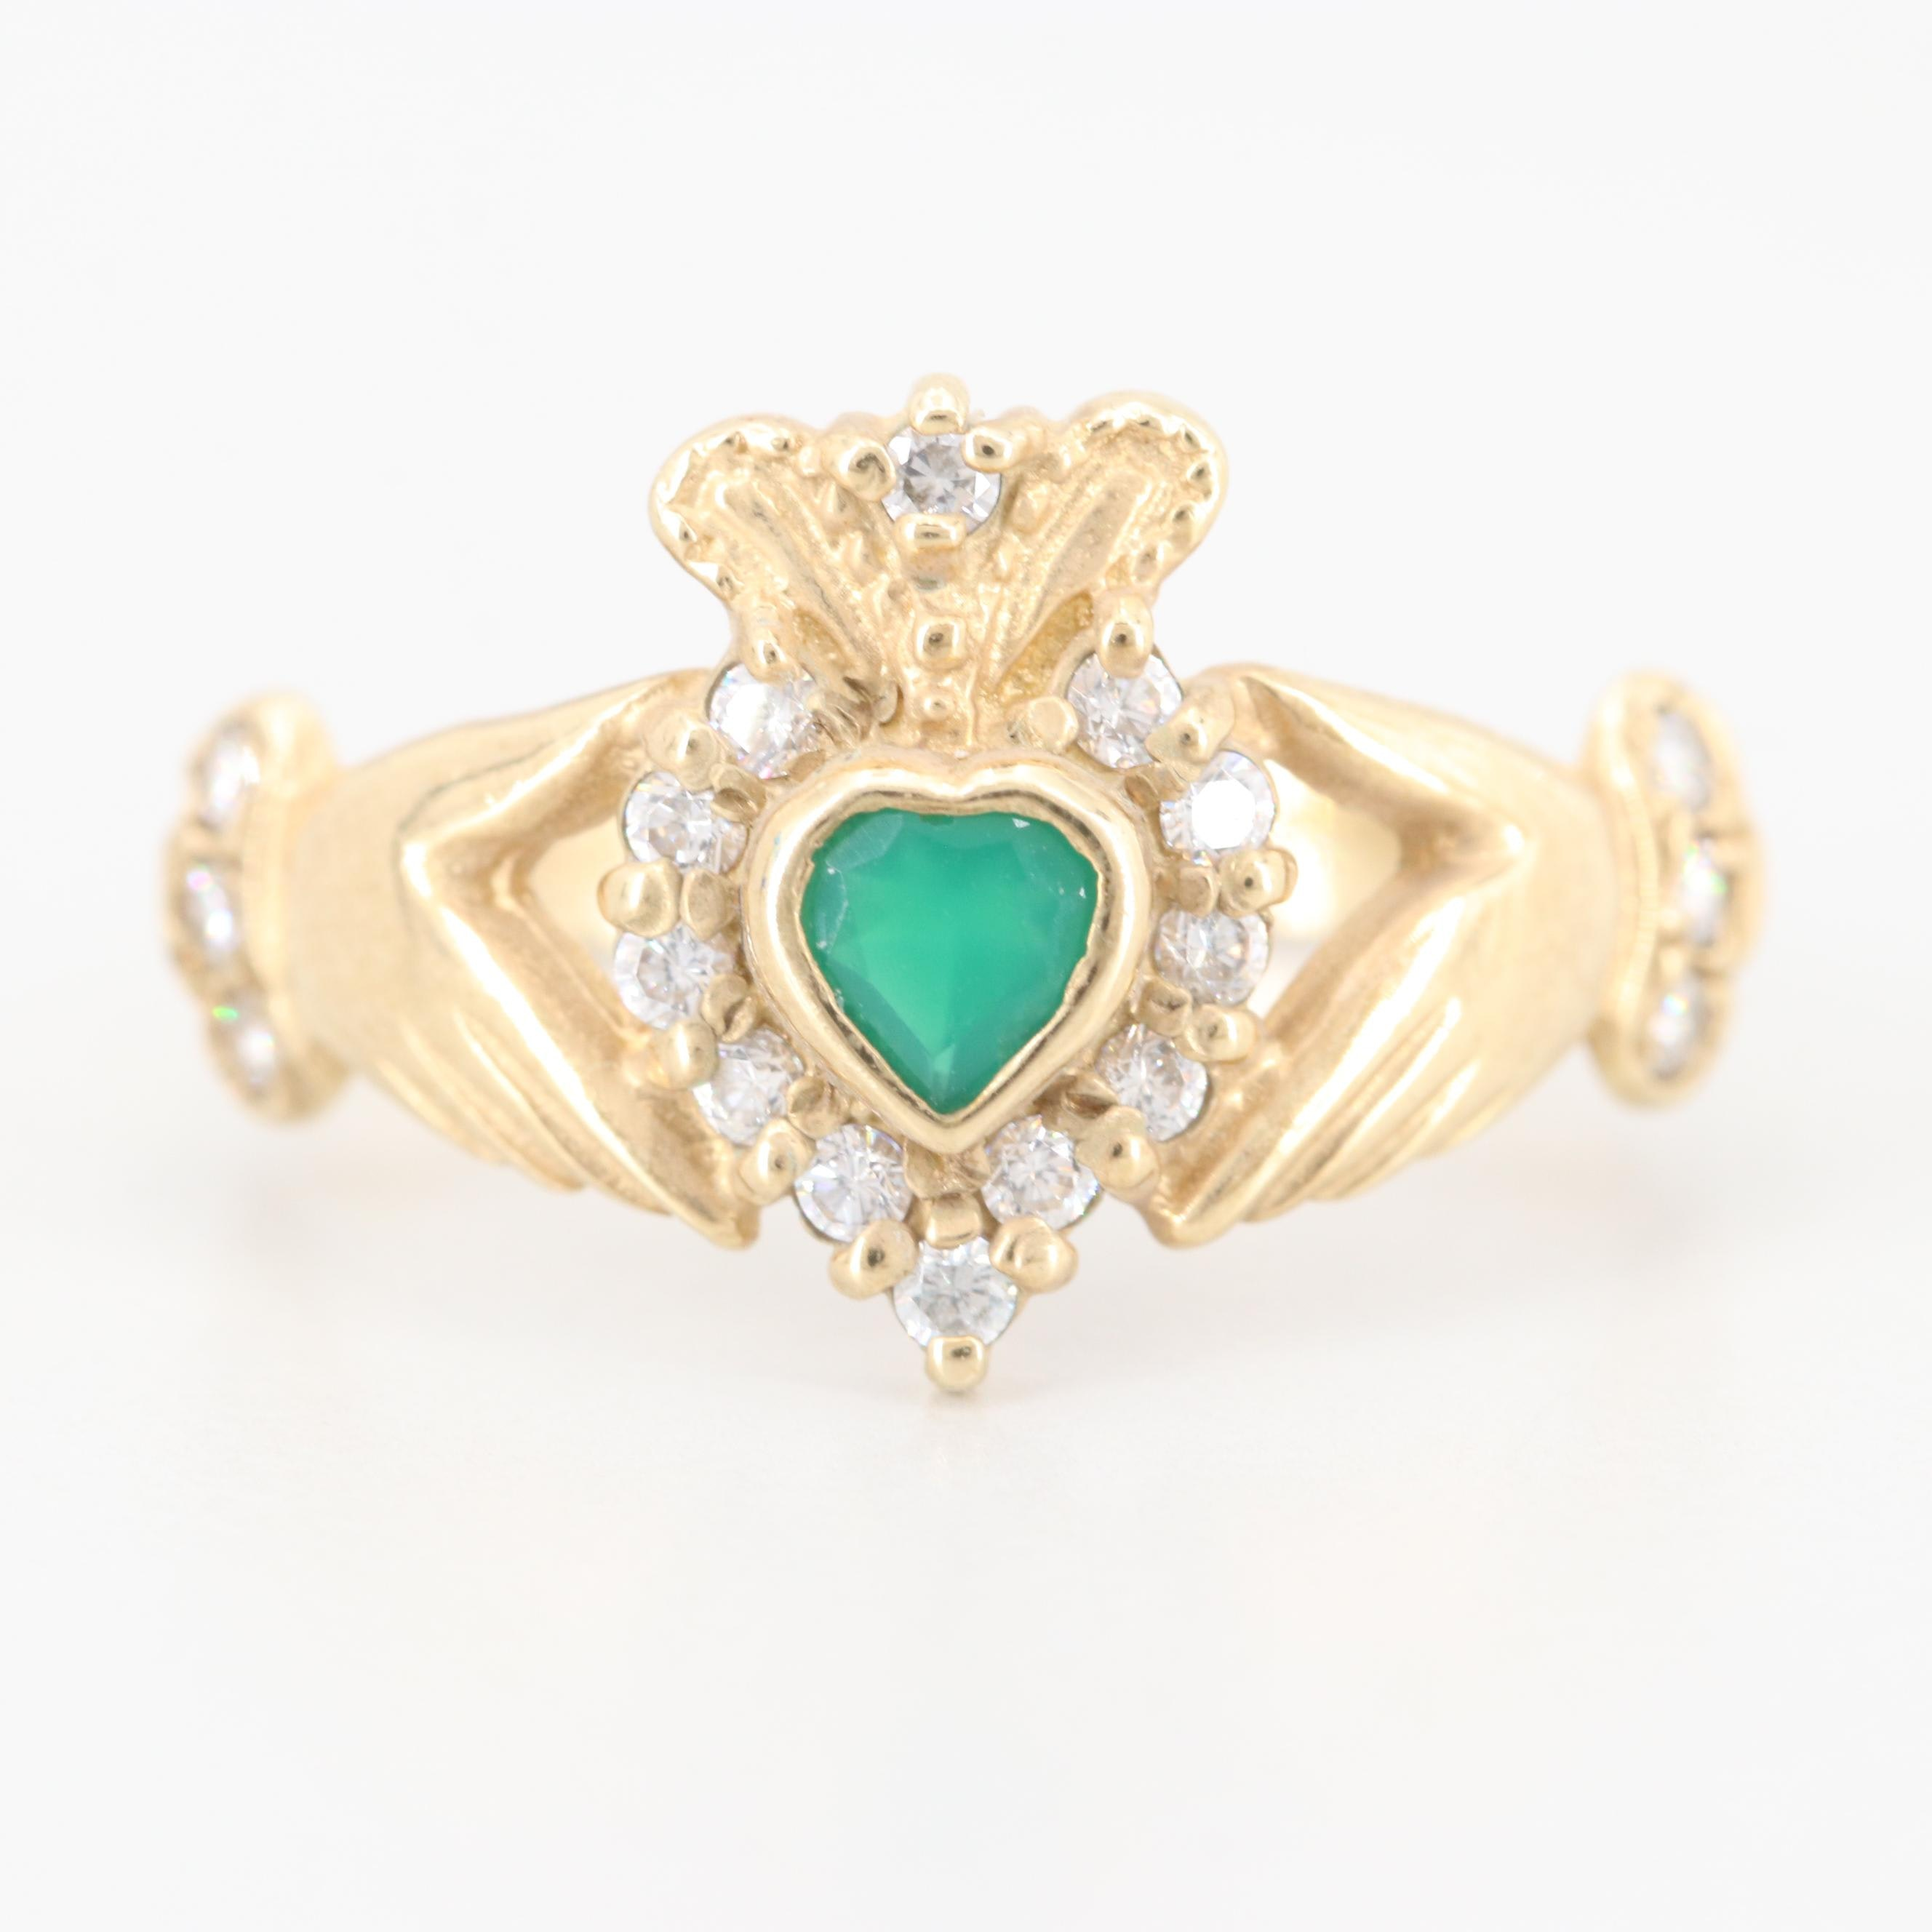 10K Yellow Gold Chalcedony and Cubic Zirconia Claddagh Ring